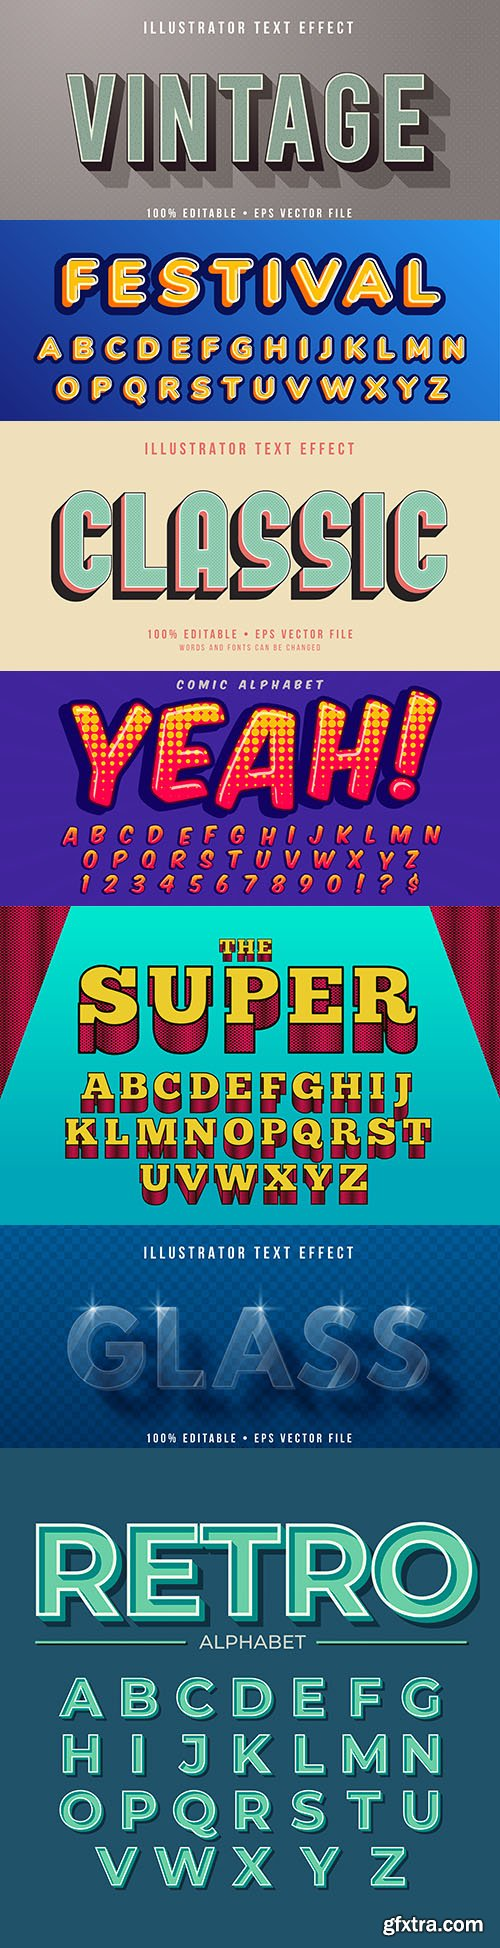 Editable retro font effect text collection illustration 16